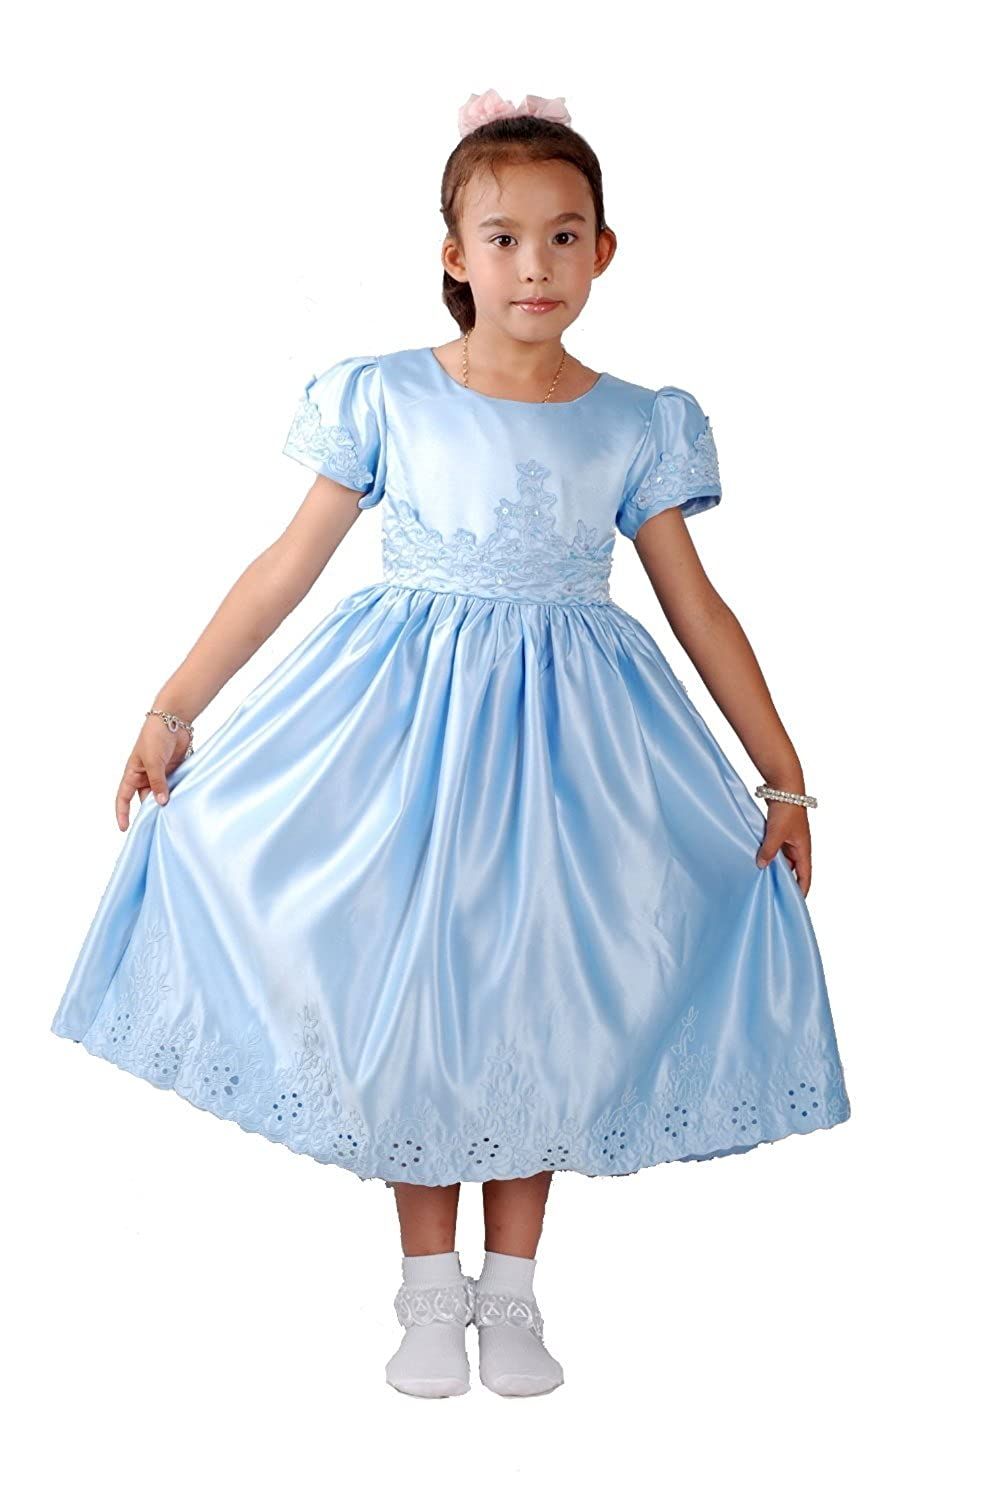 Cinda girls wedding party flower girl bridesmaid dress cinda girls wedding party flower girl bridesmaid dress amazon clothing ombrellifo Image collections